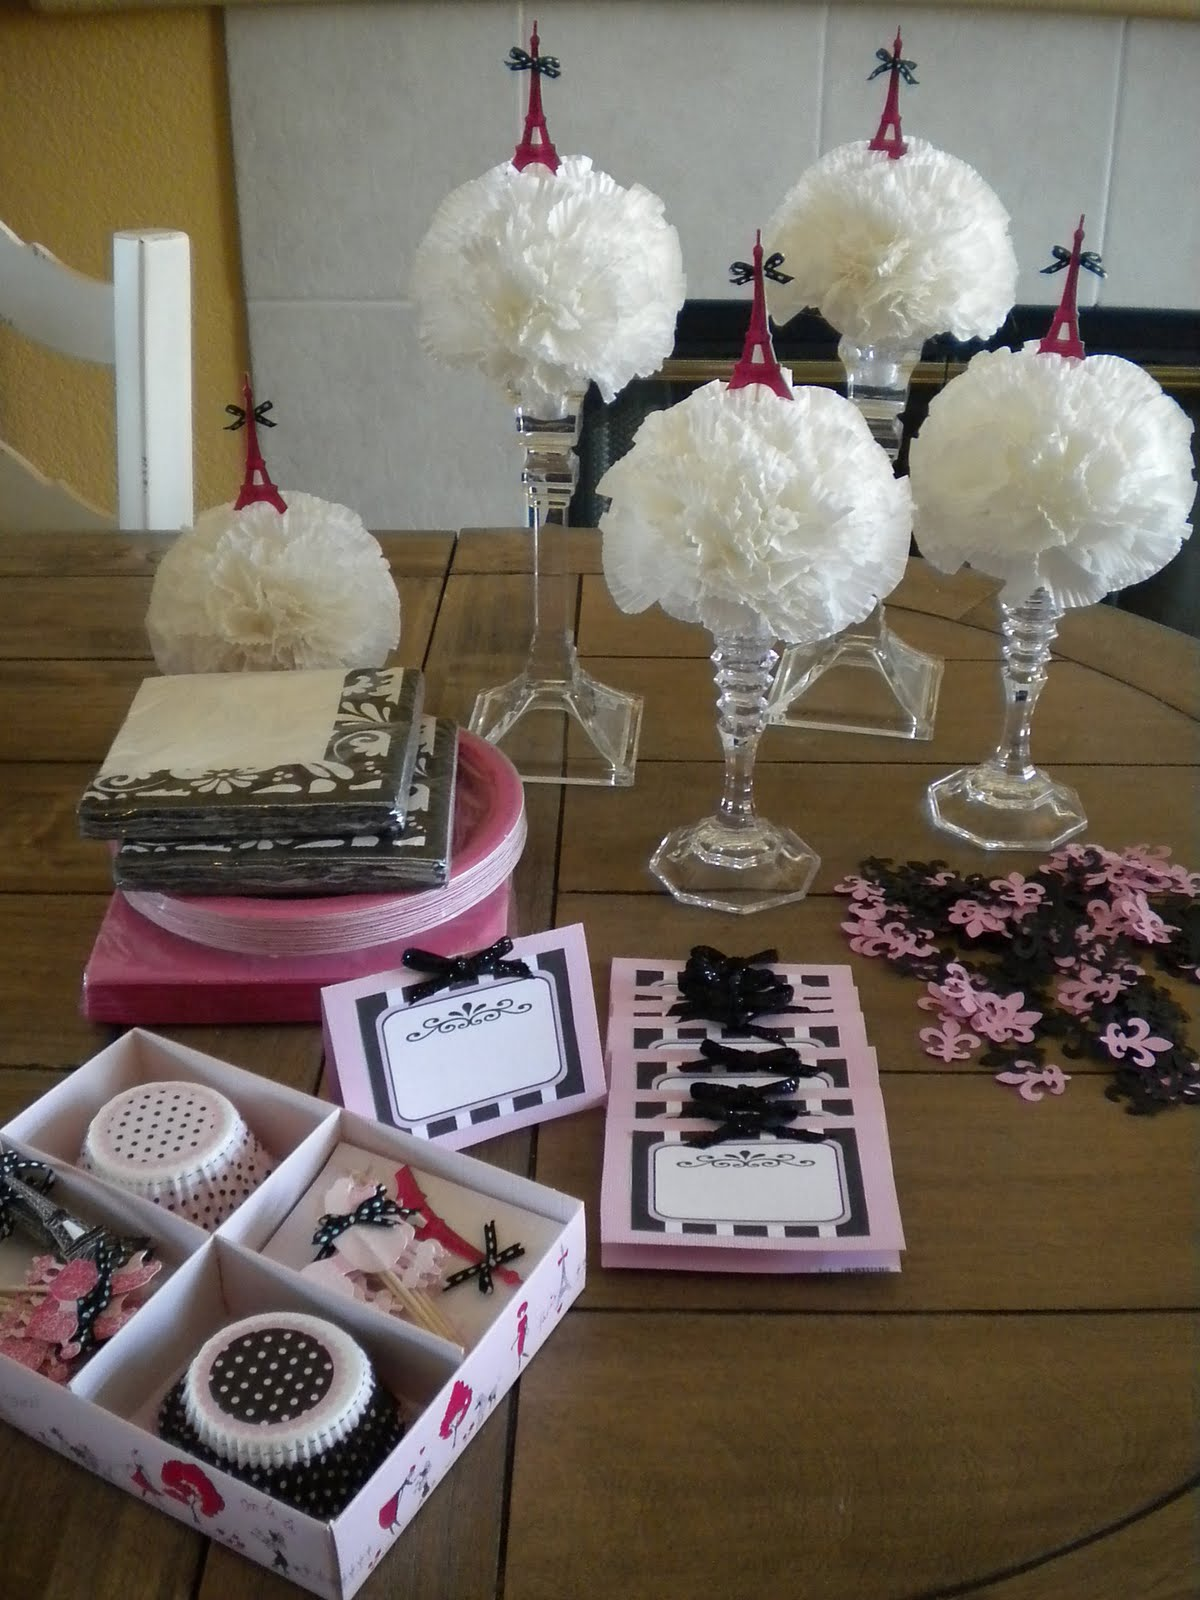 Shabby brocante table decrations for lucie 39 s paris party - French themed table decorations ...